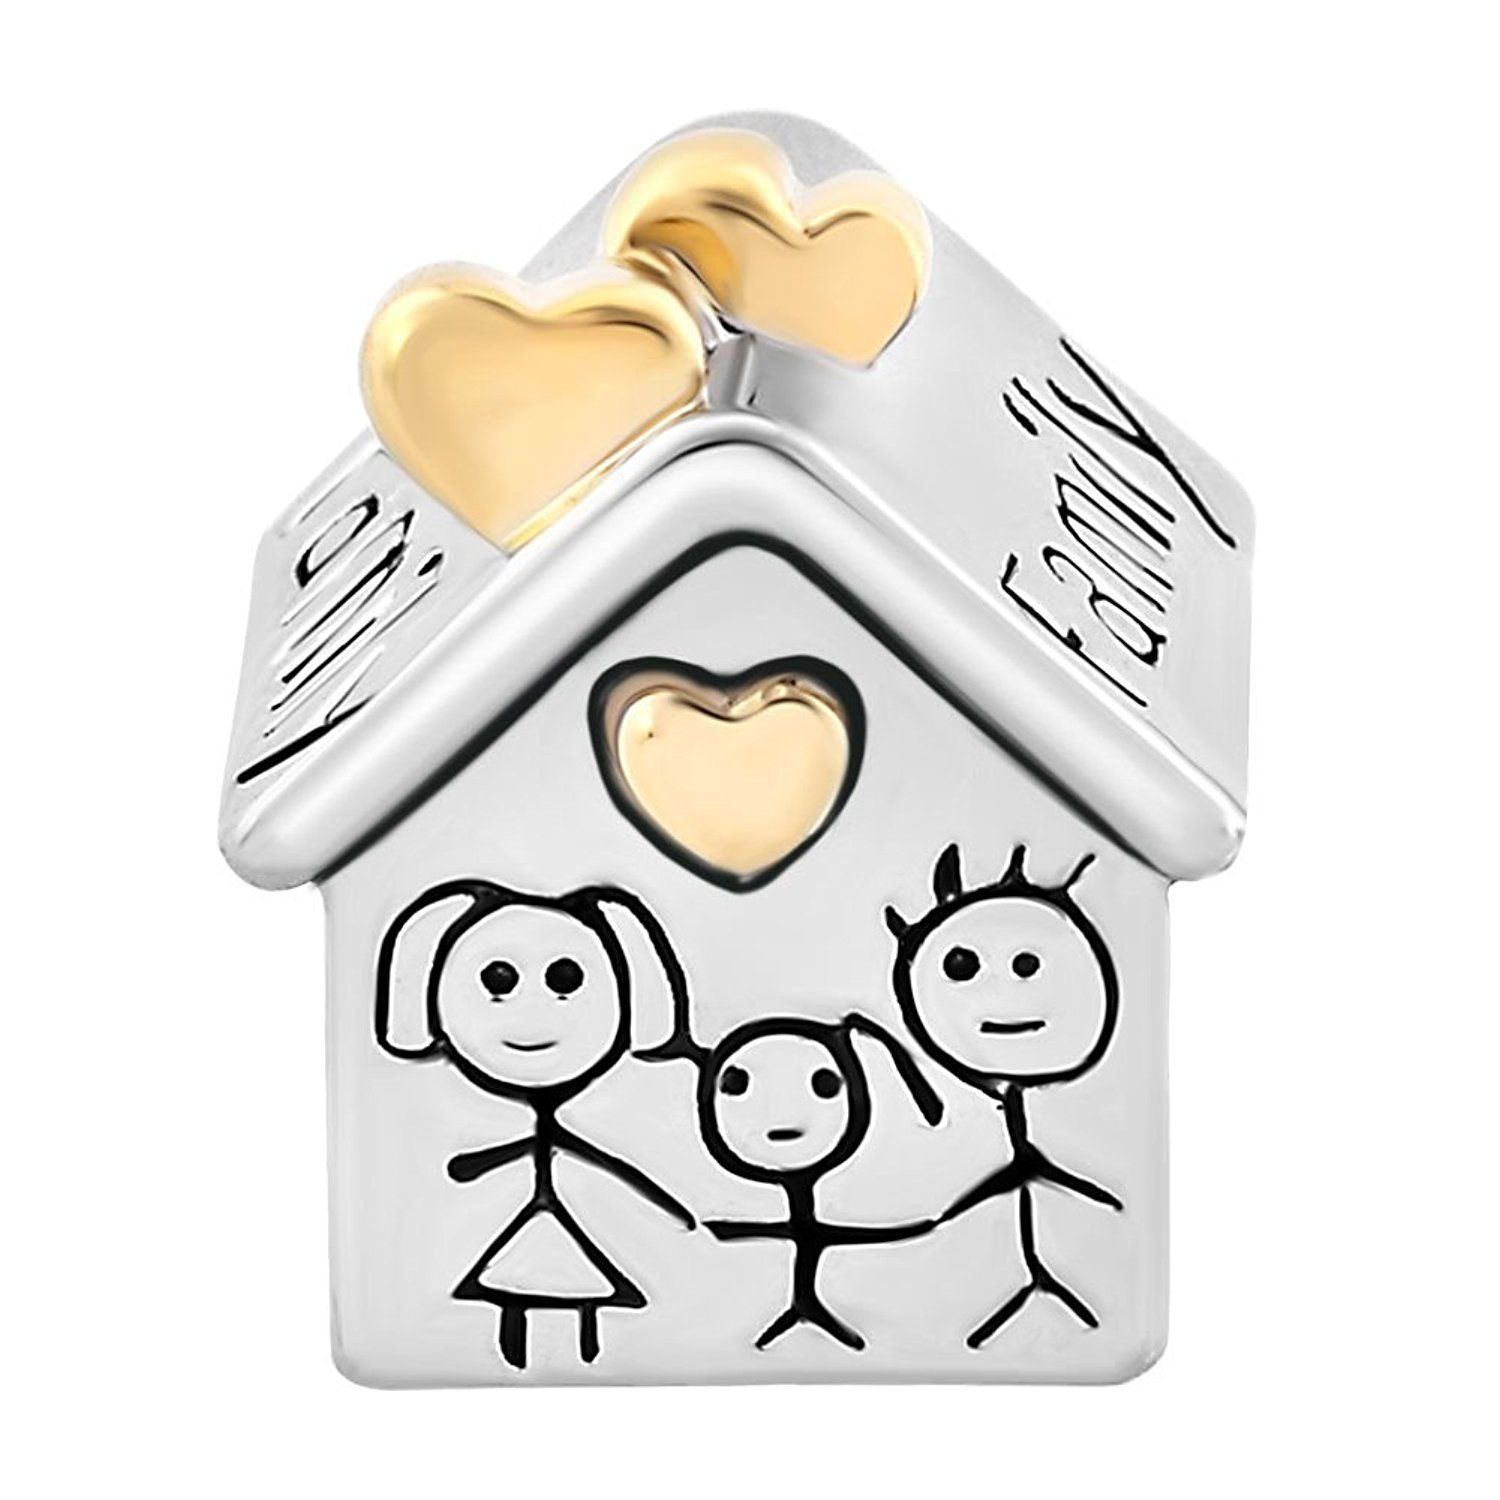 Uniqueen Family House Mother Father Child Together Silver Charm Beads fits chamilia & troll Bracelet 9eIotVz5be